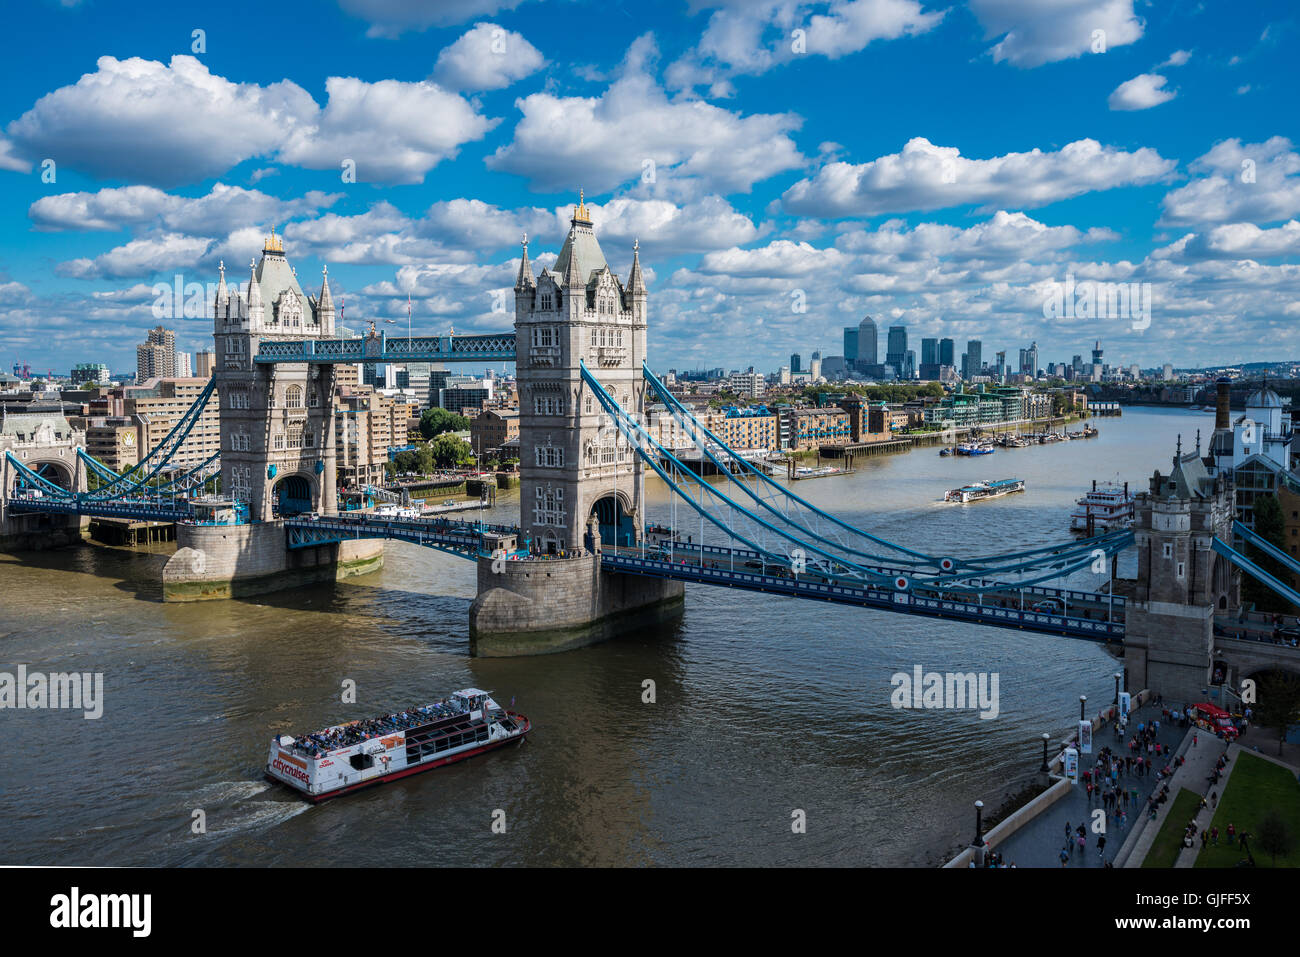 Tower Bridge, London, United Kingdom Stock Photo